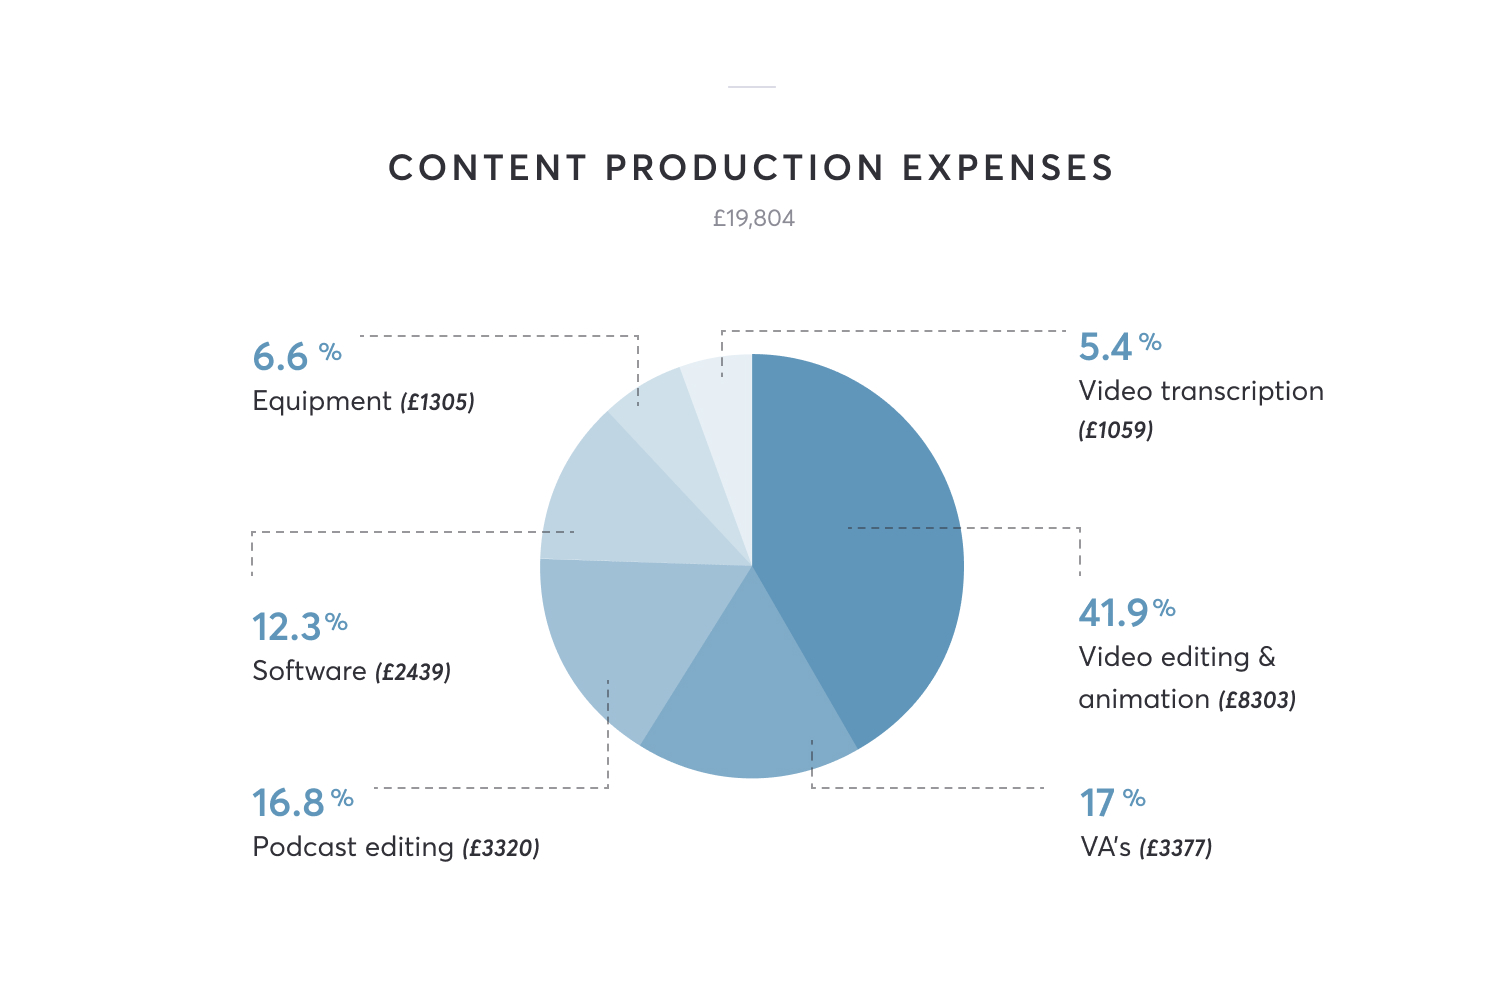 Content production expenses are £1059 for video transcription, £8303 for video editing, £3377 for VA services, £3320 for podcast editing, £2439 for software and £1305 for equipment